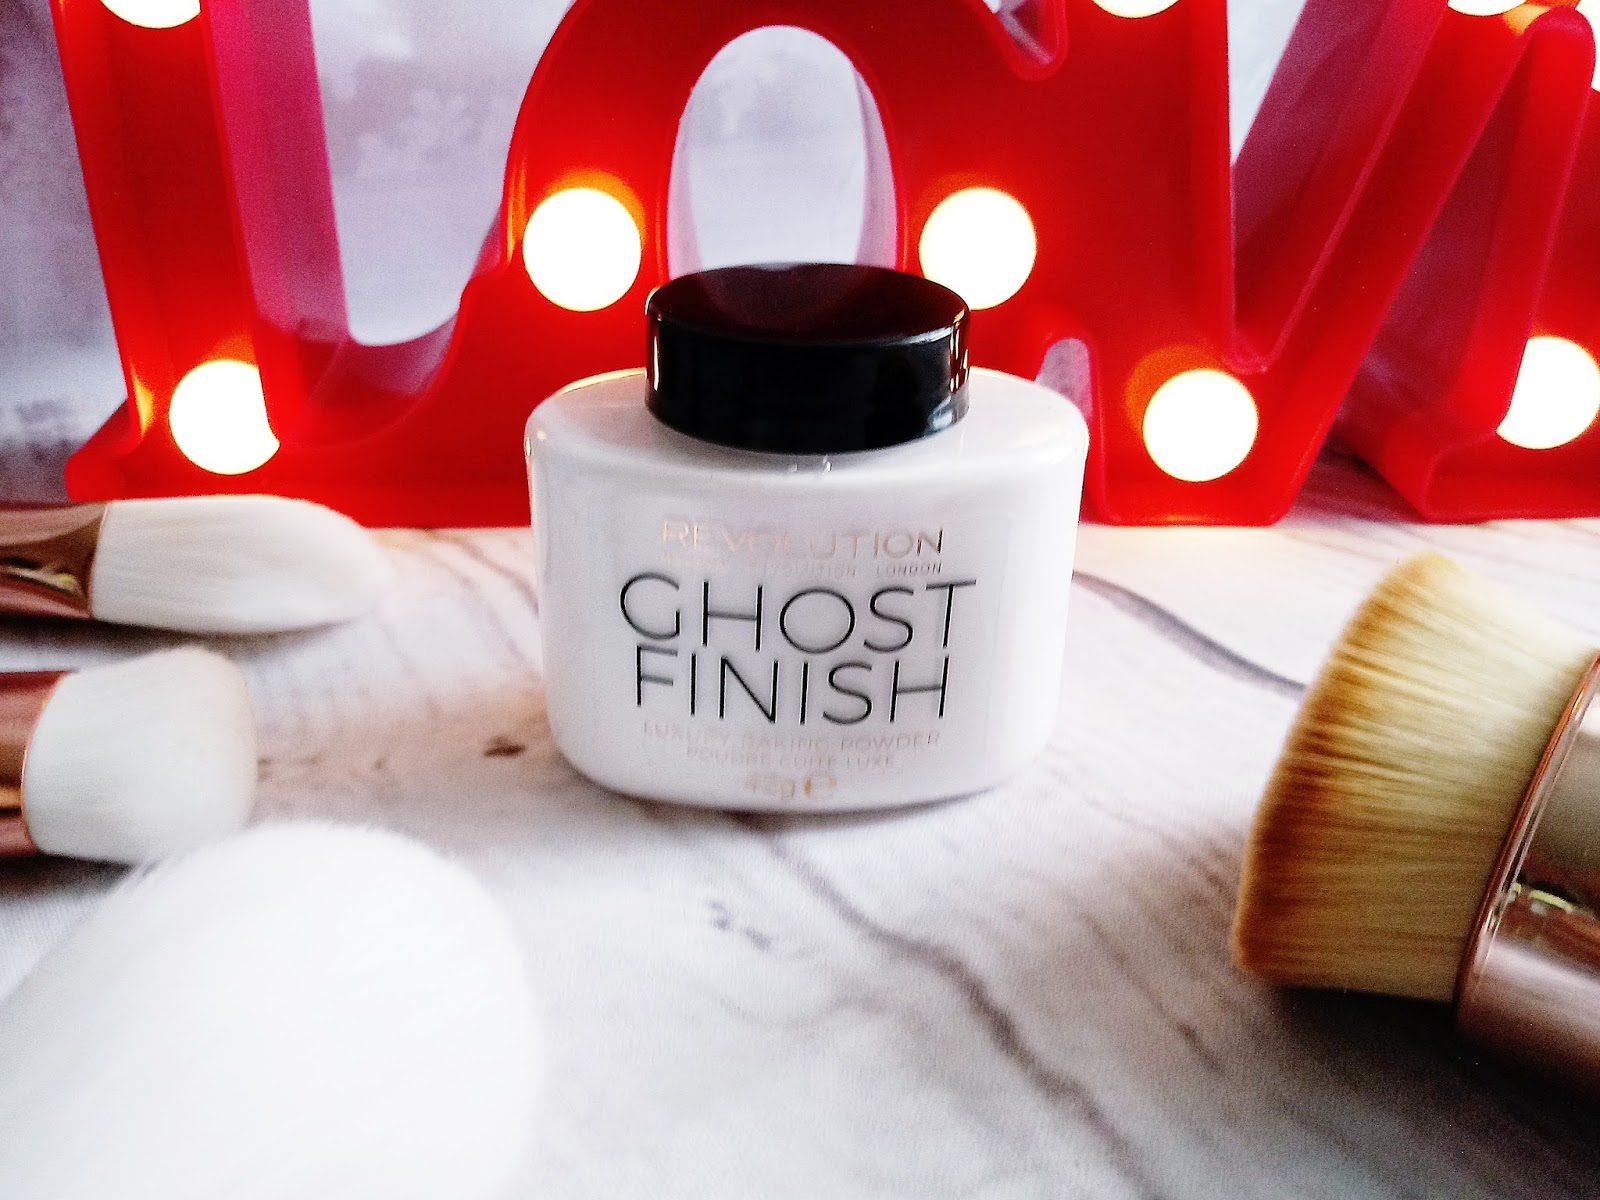 GHOST FINISH Makeup Revolution